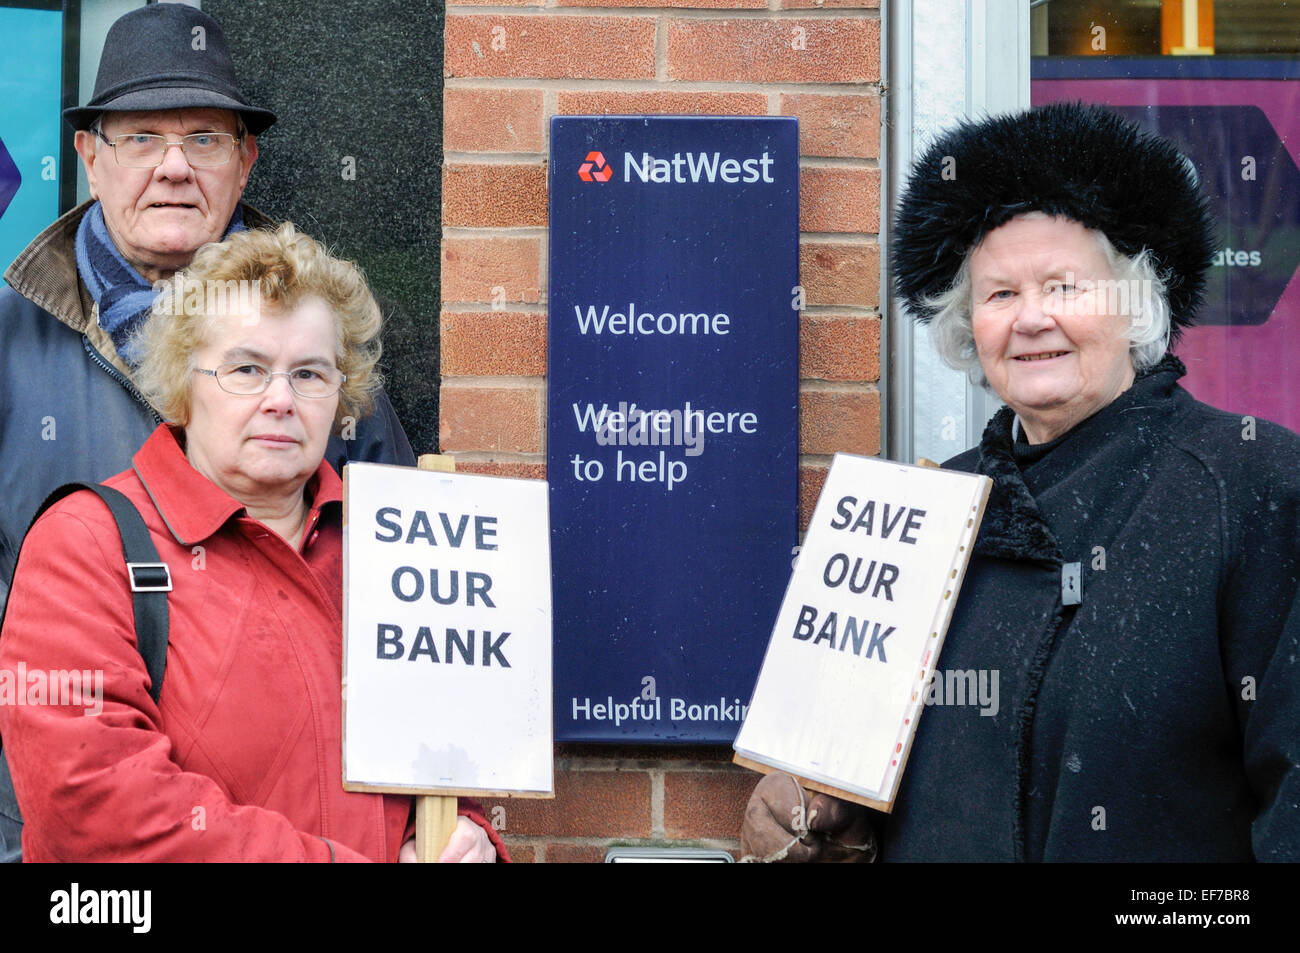 Keyworth, Nottinghamshire, UK. 28th January, 2015. Local Councillor Sam Boote and residents stage a 2 hour protest - Stock Image